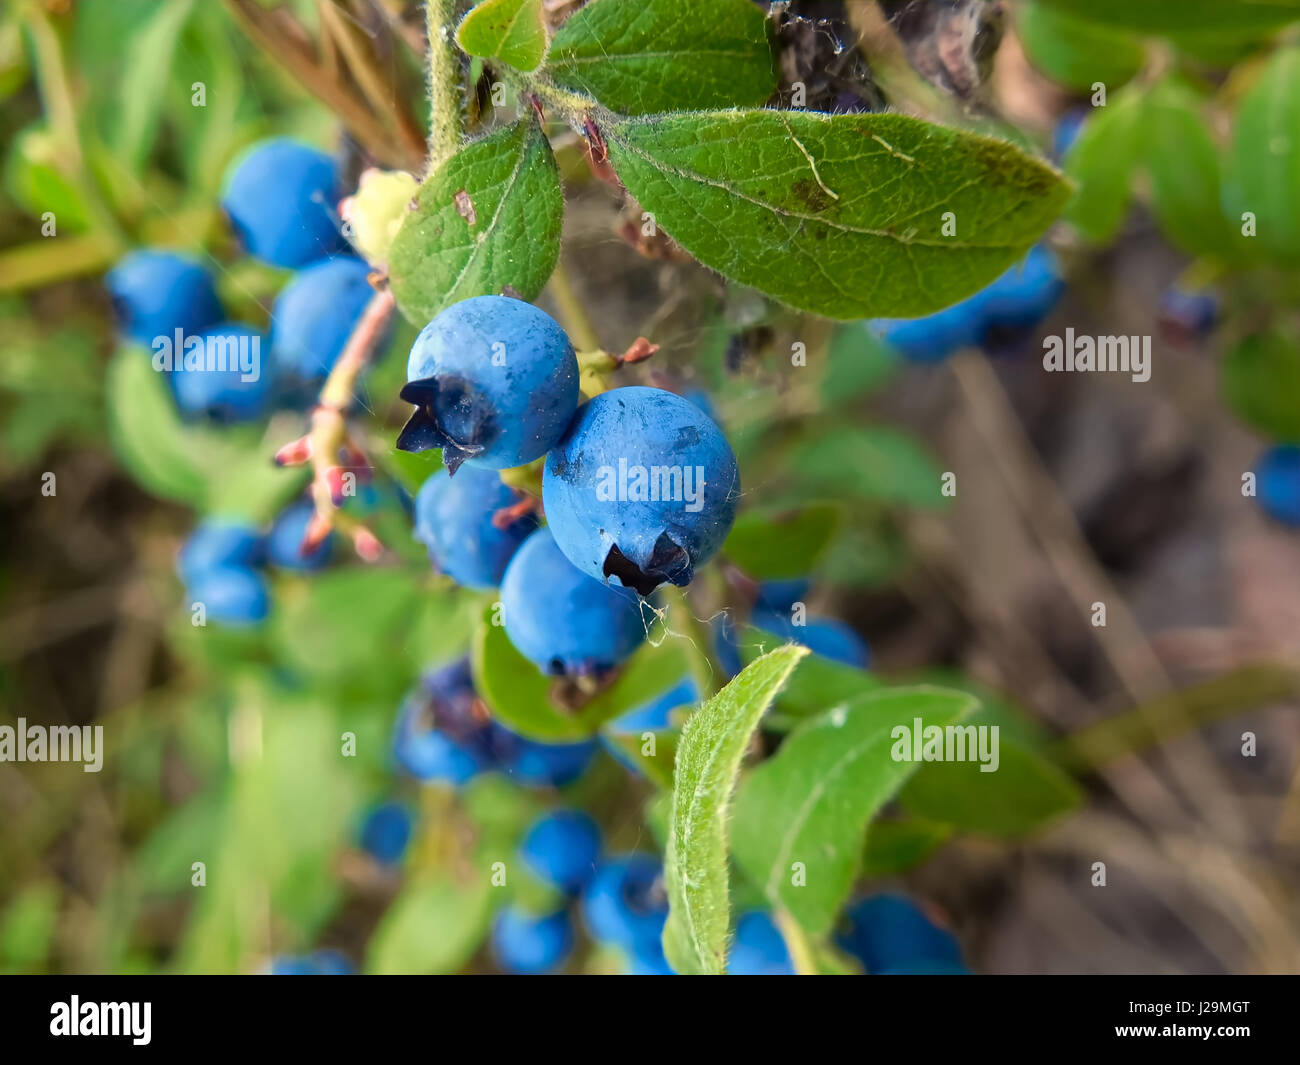 Wild blueberries covered with fine spider webs. - Stock Image